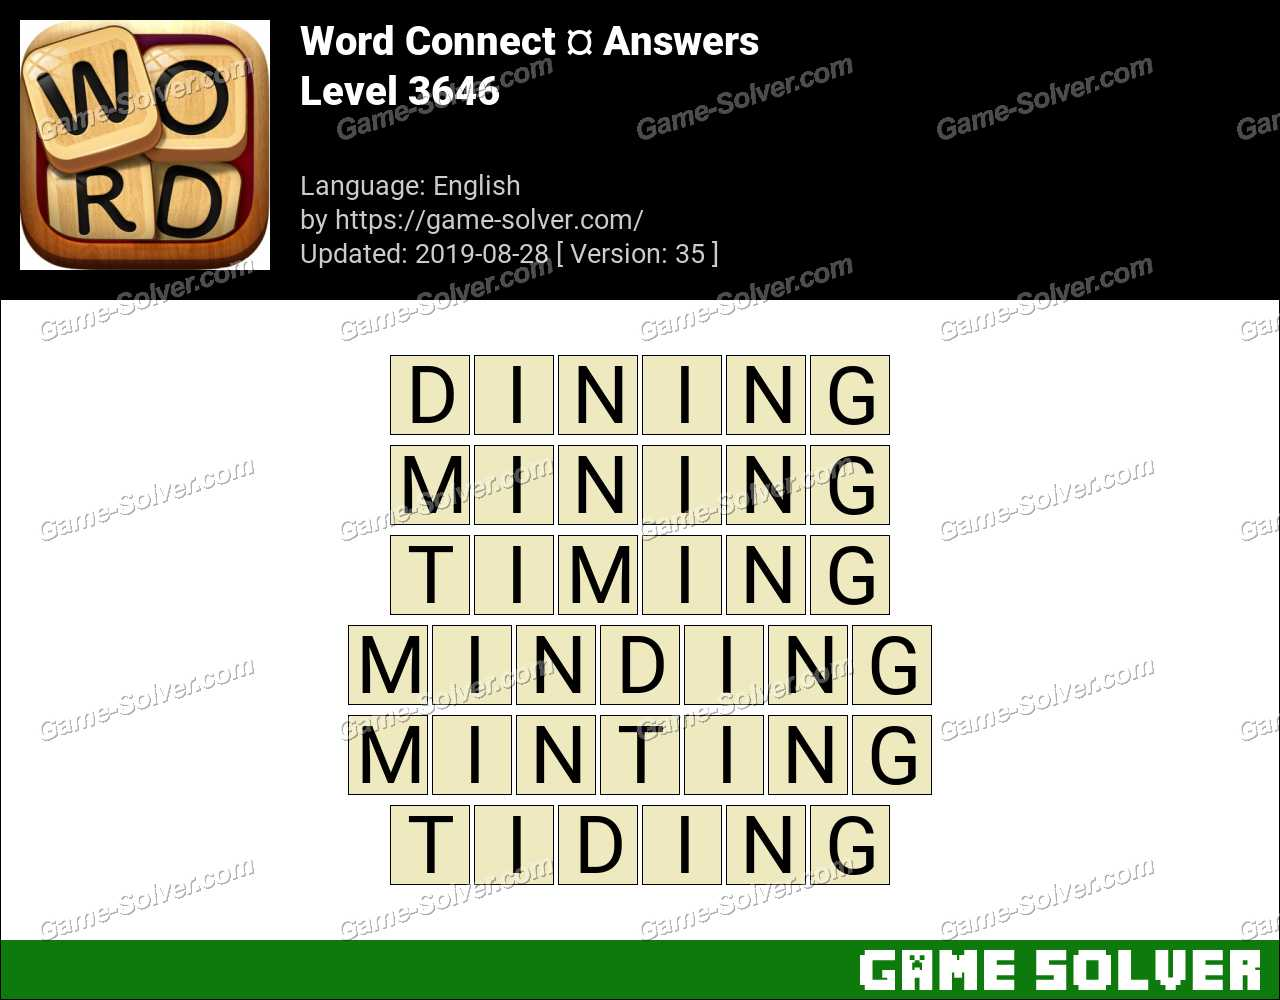 Word Connect Level 3646 Answers